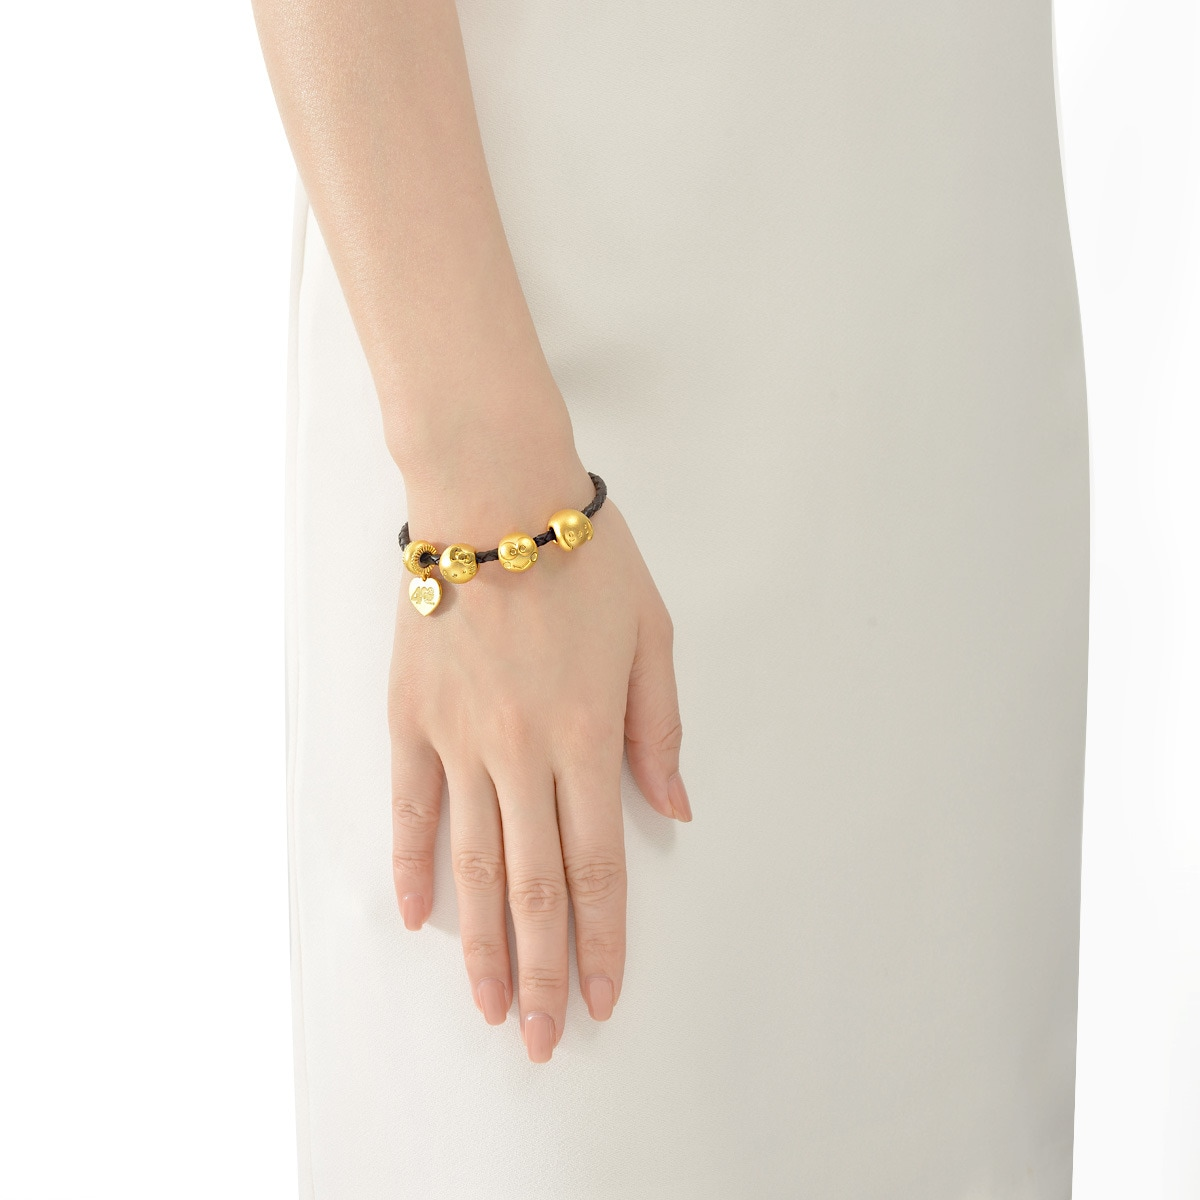 Sanrio \'Hello Kitty\' 999 Gold Bracelet | Chow Sang Sang Jewellery ...